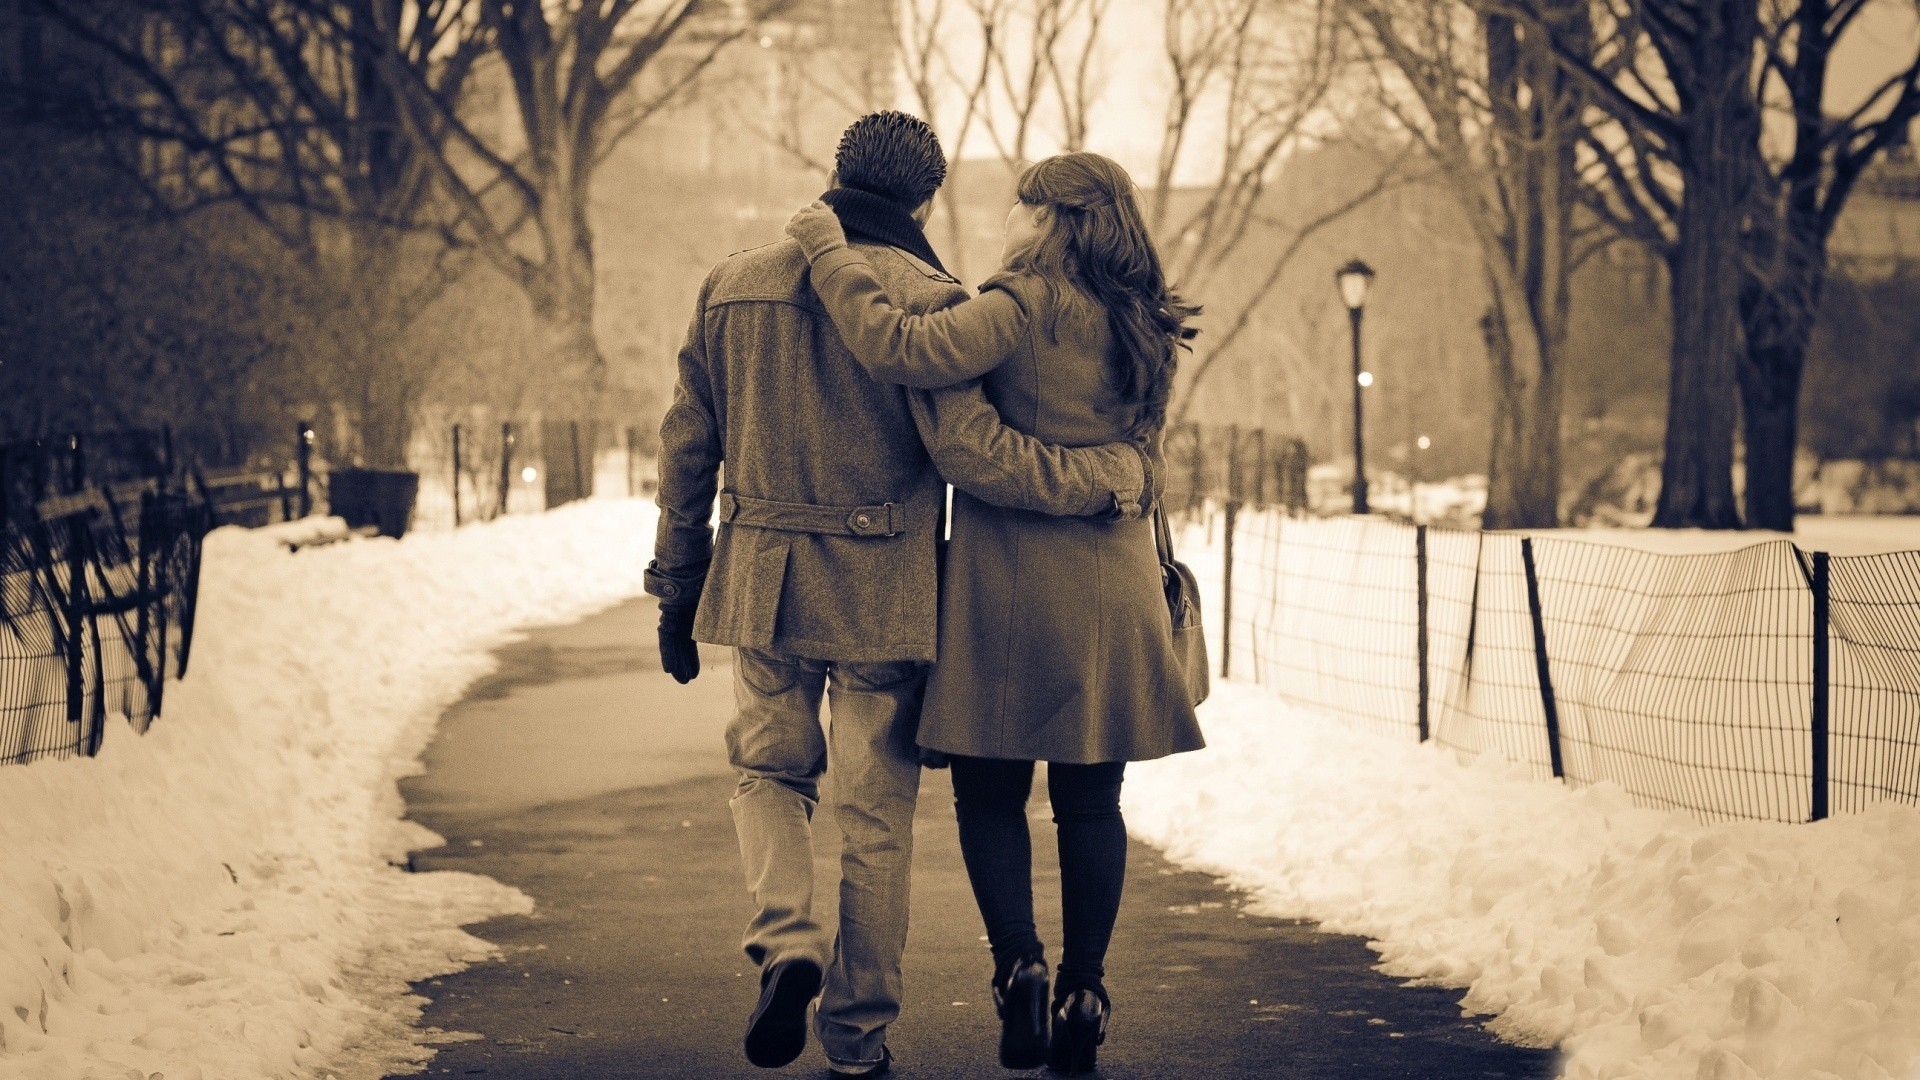 romentic-couple-romance-hd-wallpapers.jpg